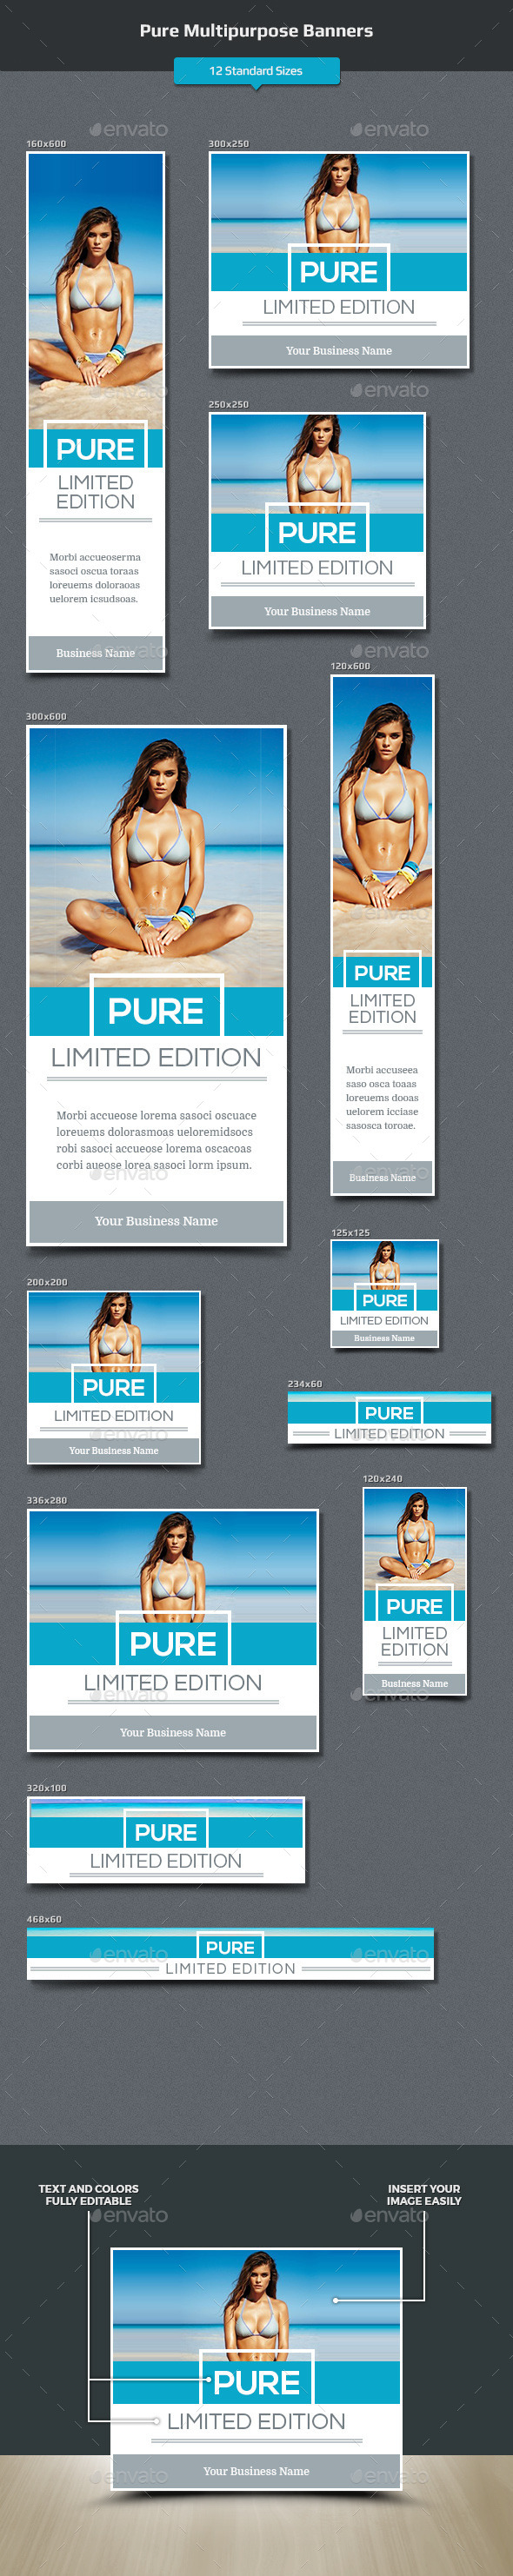 Pure Multipurpose Banners - Banners & Ads Web Elements